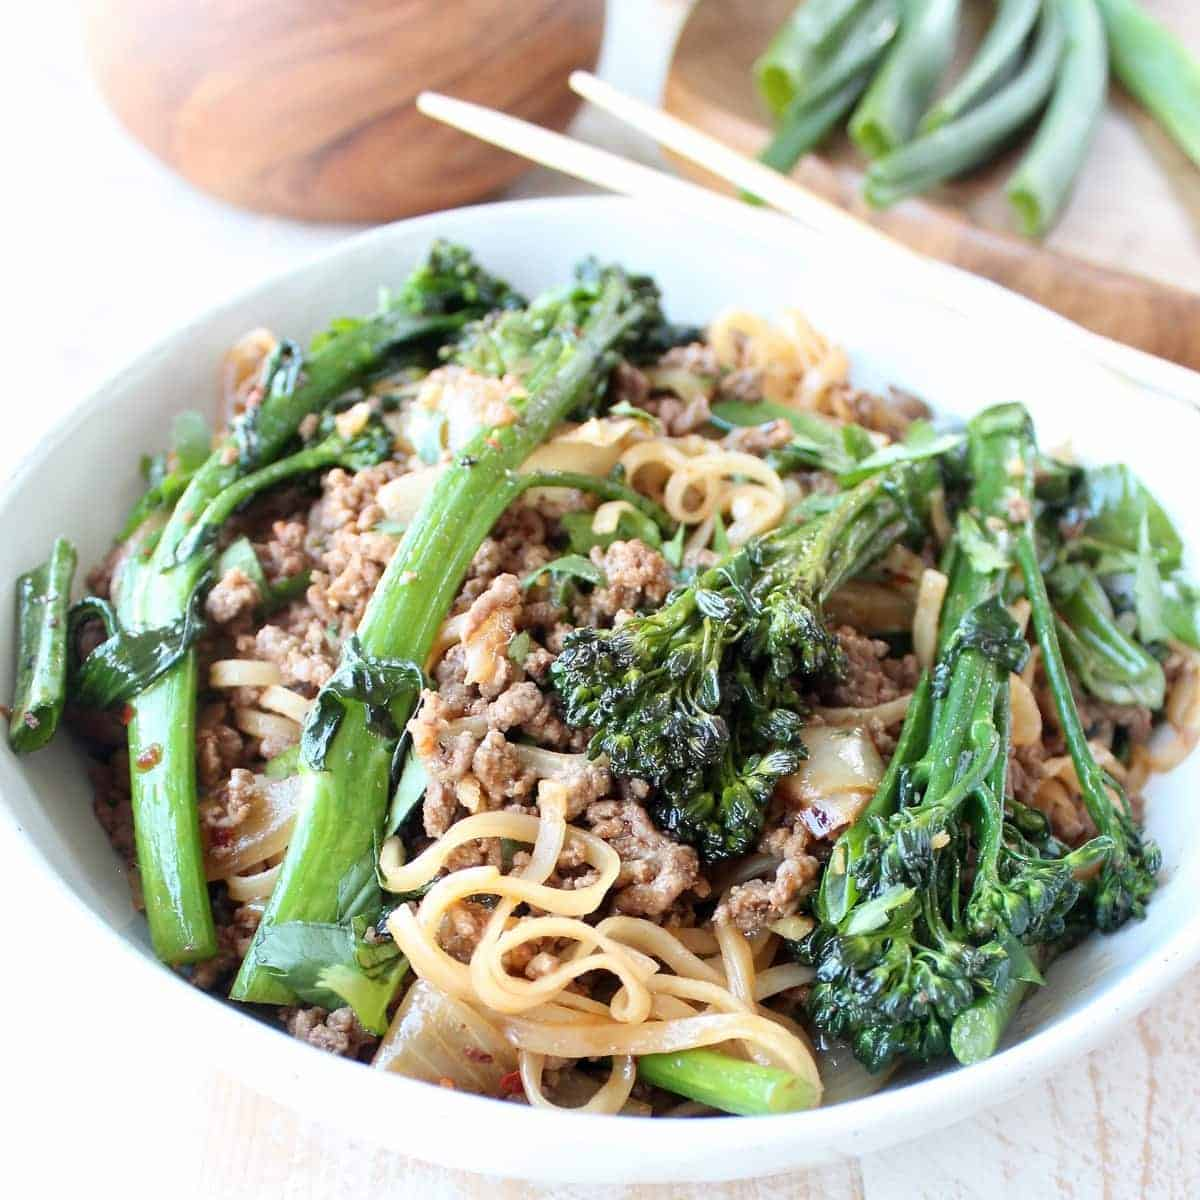 Beef and Broccoli Stir Fry Recipe - WhitneyBond.com